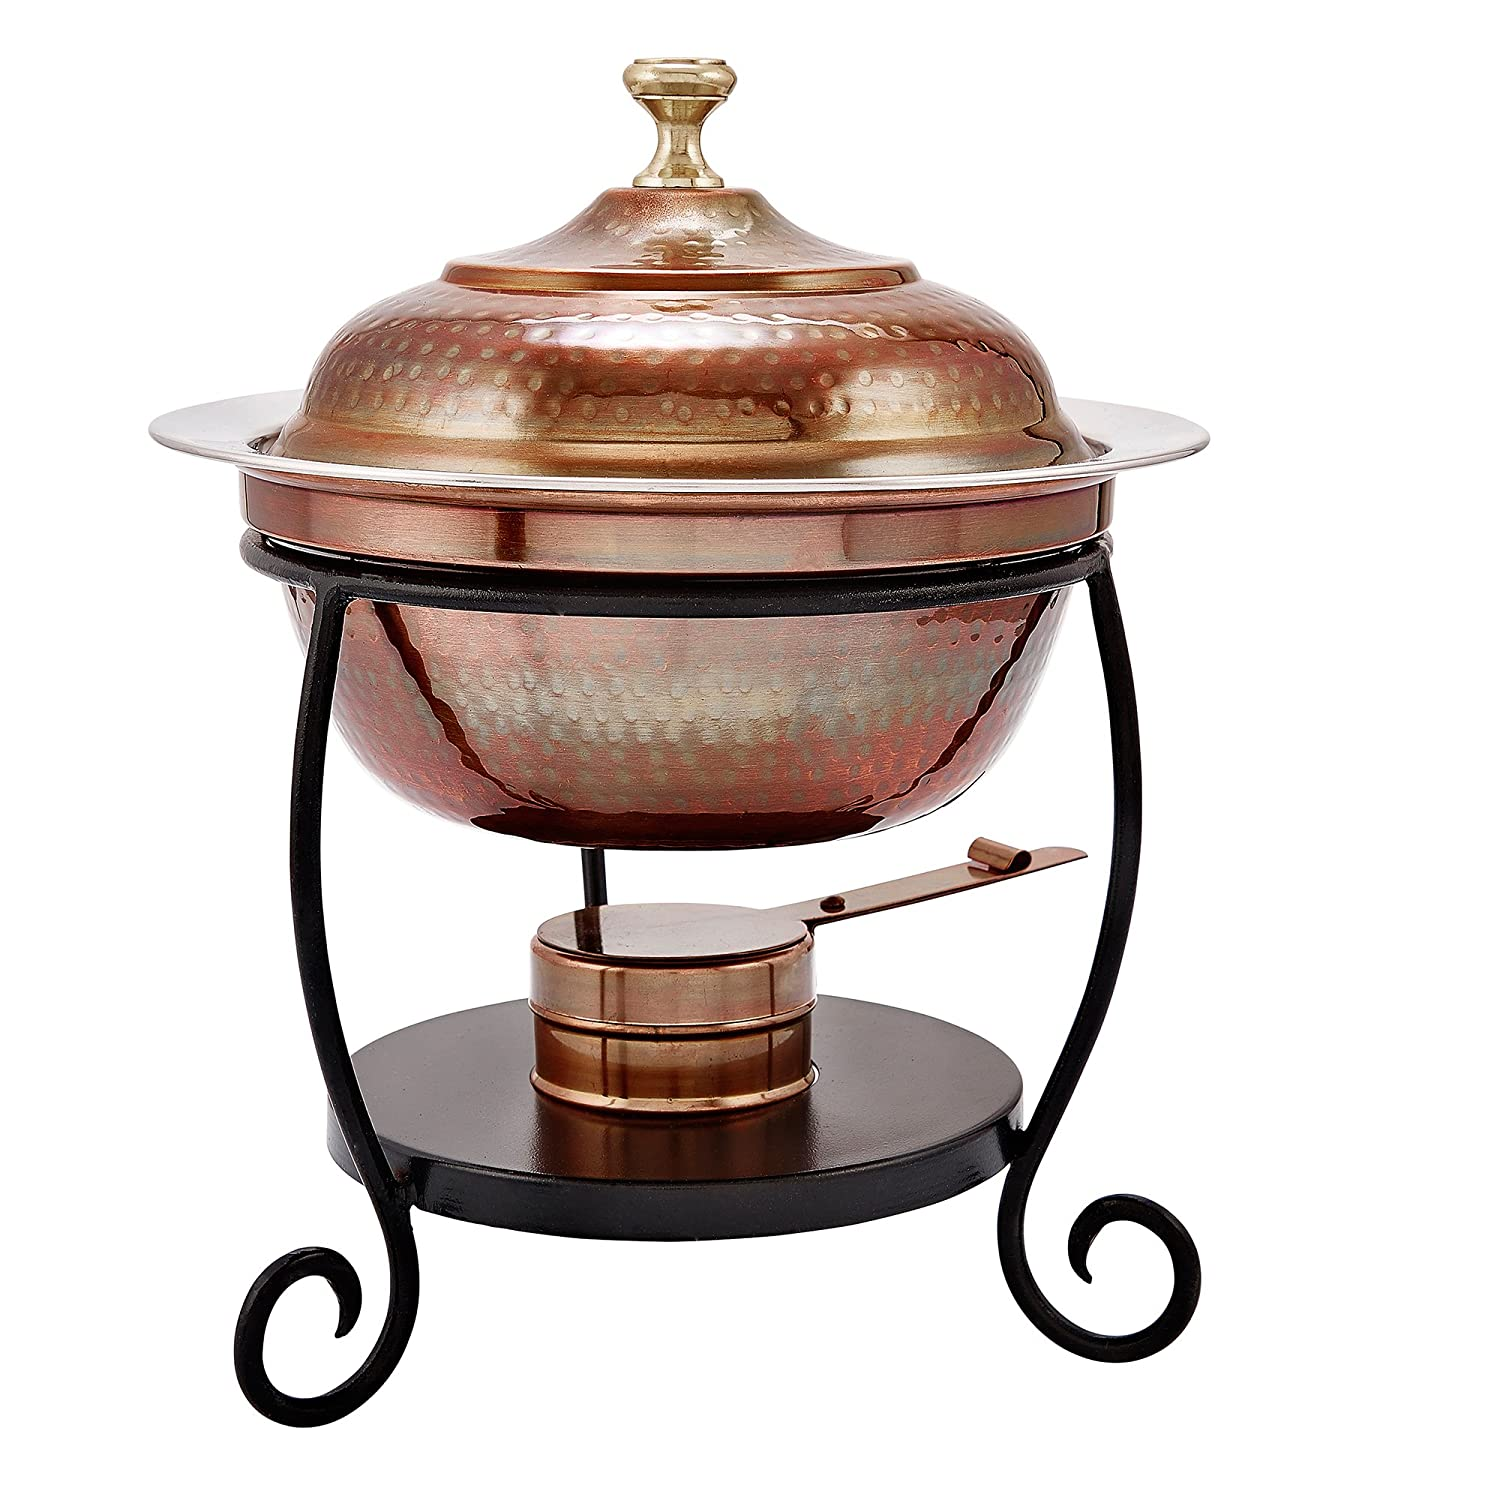 Old Dutch 838 Round Antique Copper Chafing Dish, 1-3/4-Quart, 10 by 12-1/4-Inch Old Dutch Int' l LTD